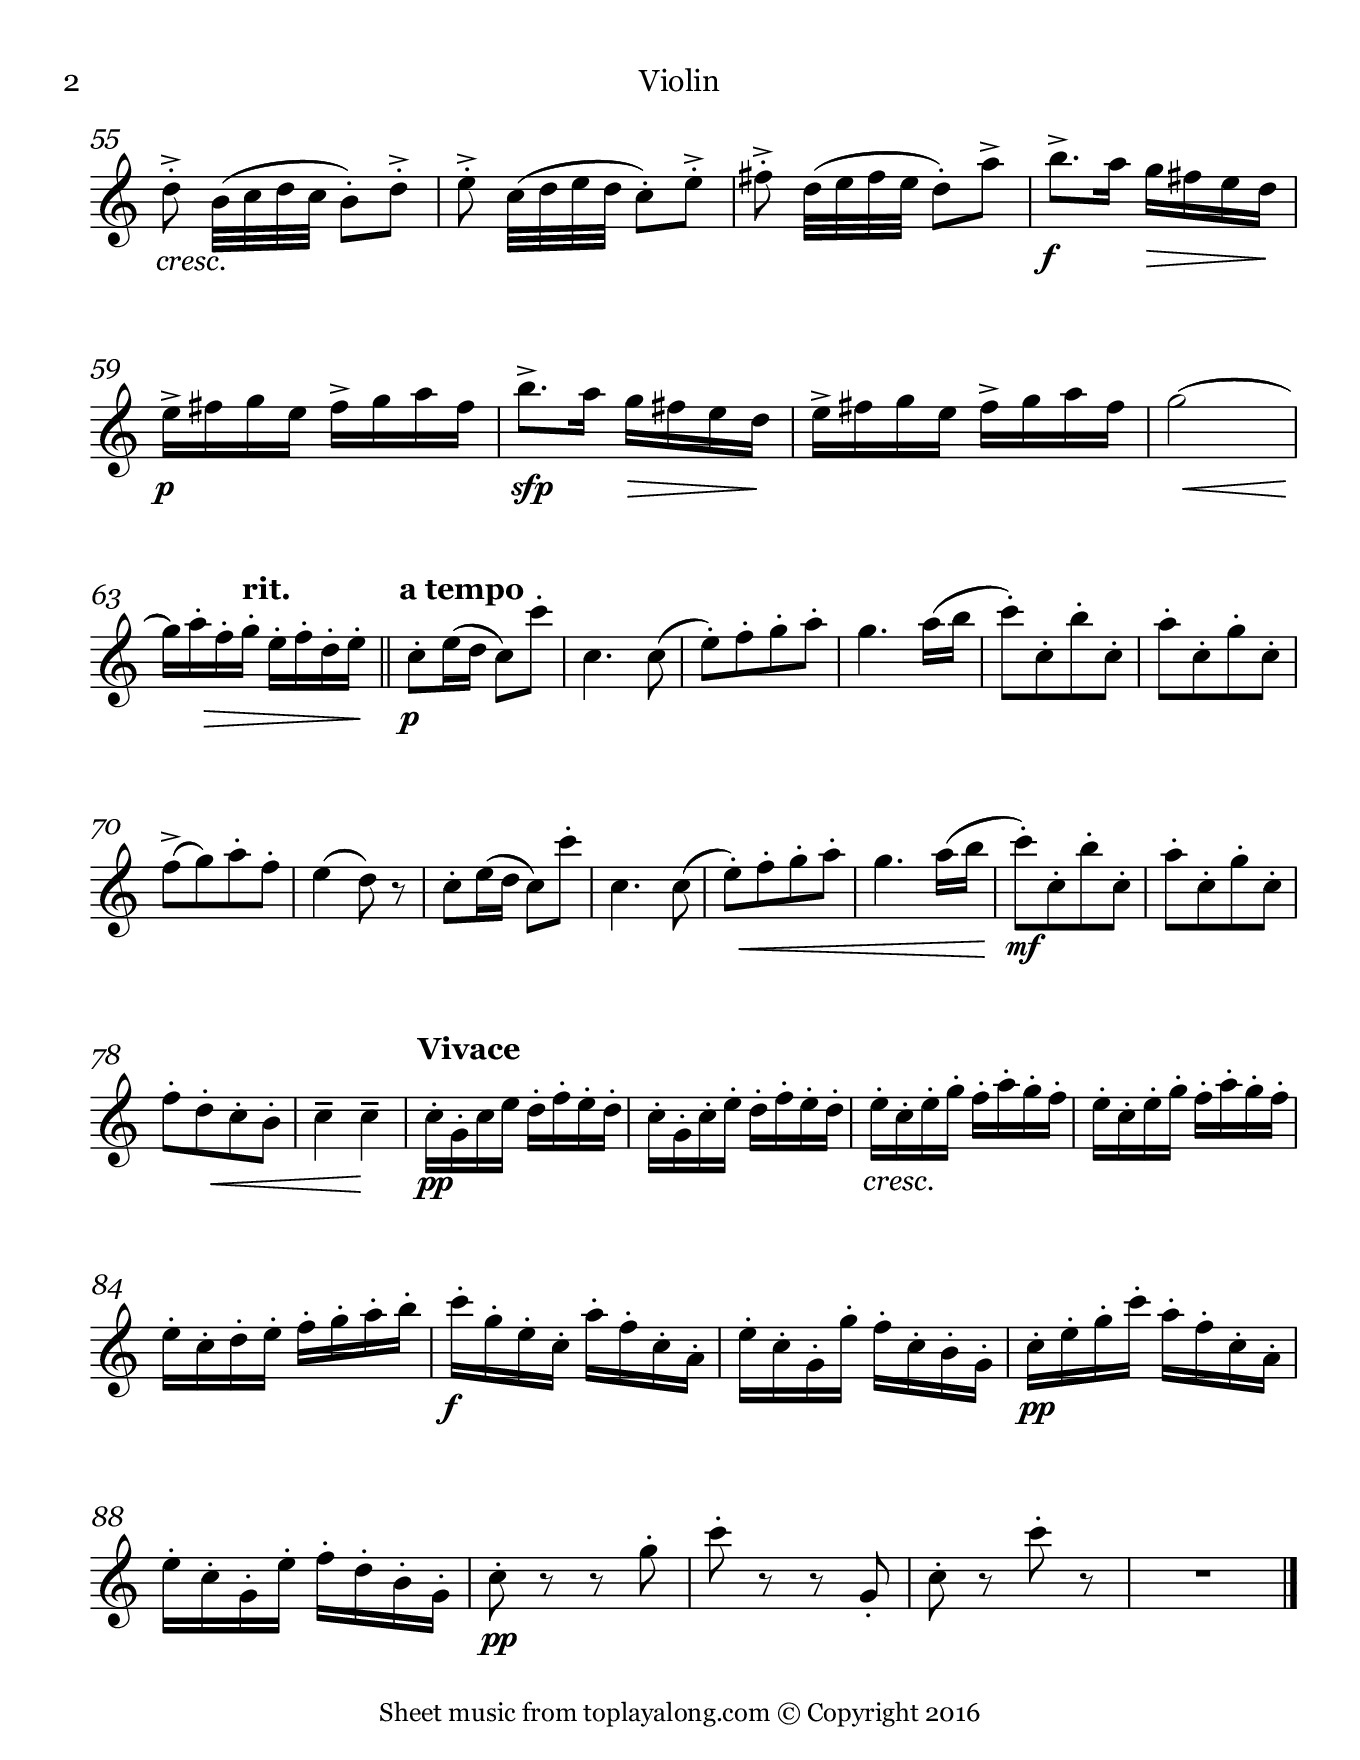 Tambourin by Gossec. Sheet music for Violin, page 2.